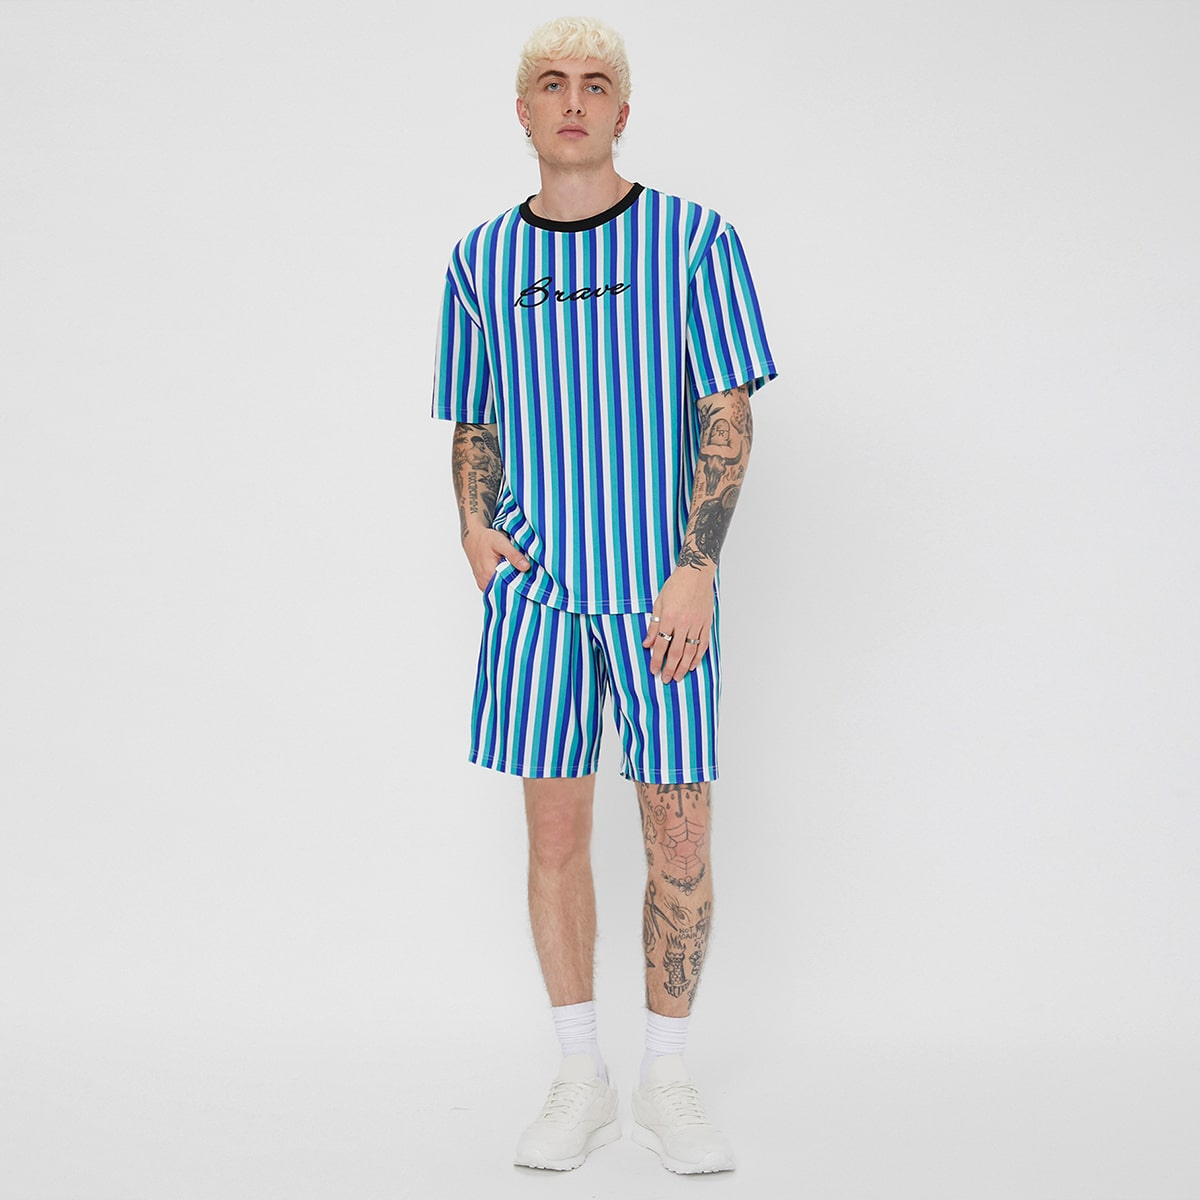 Men Letter Graphic Striped Tee & Shorts, SHEIN  - buy with discount